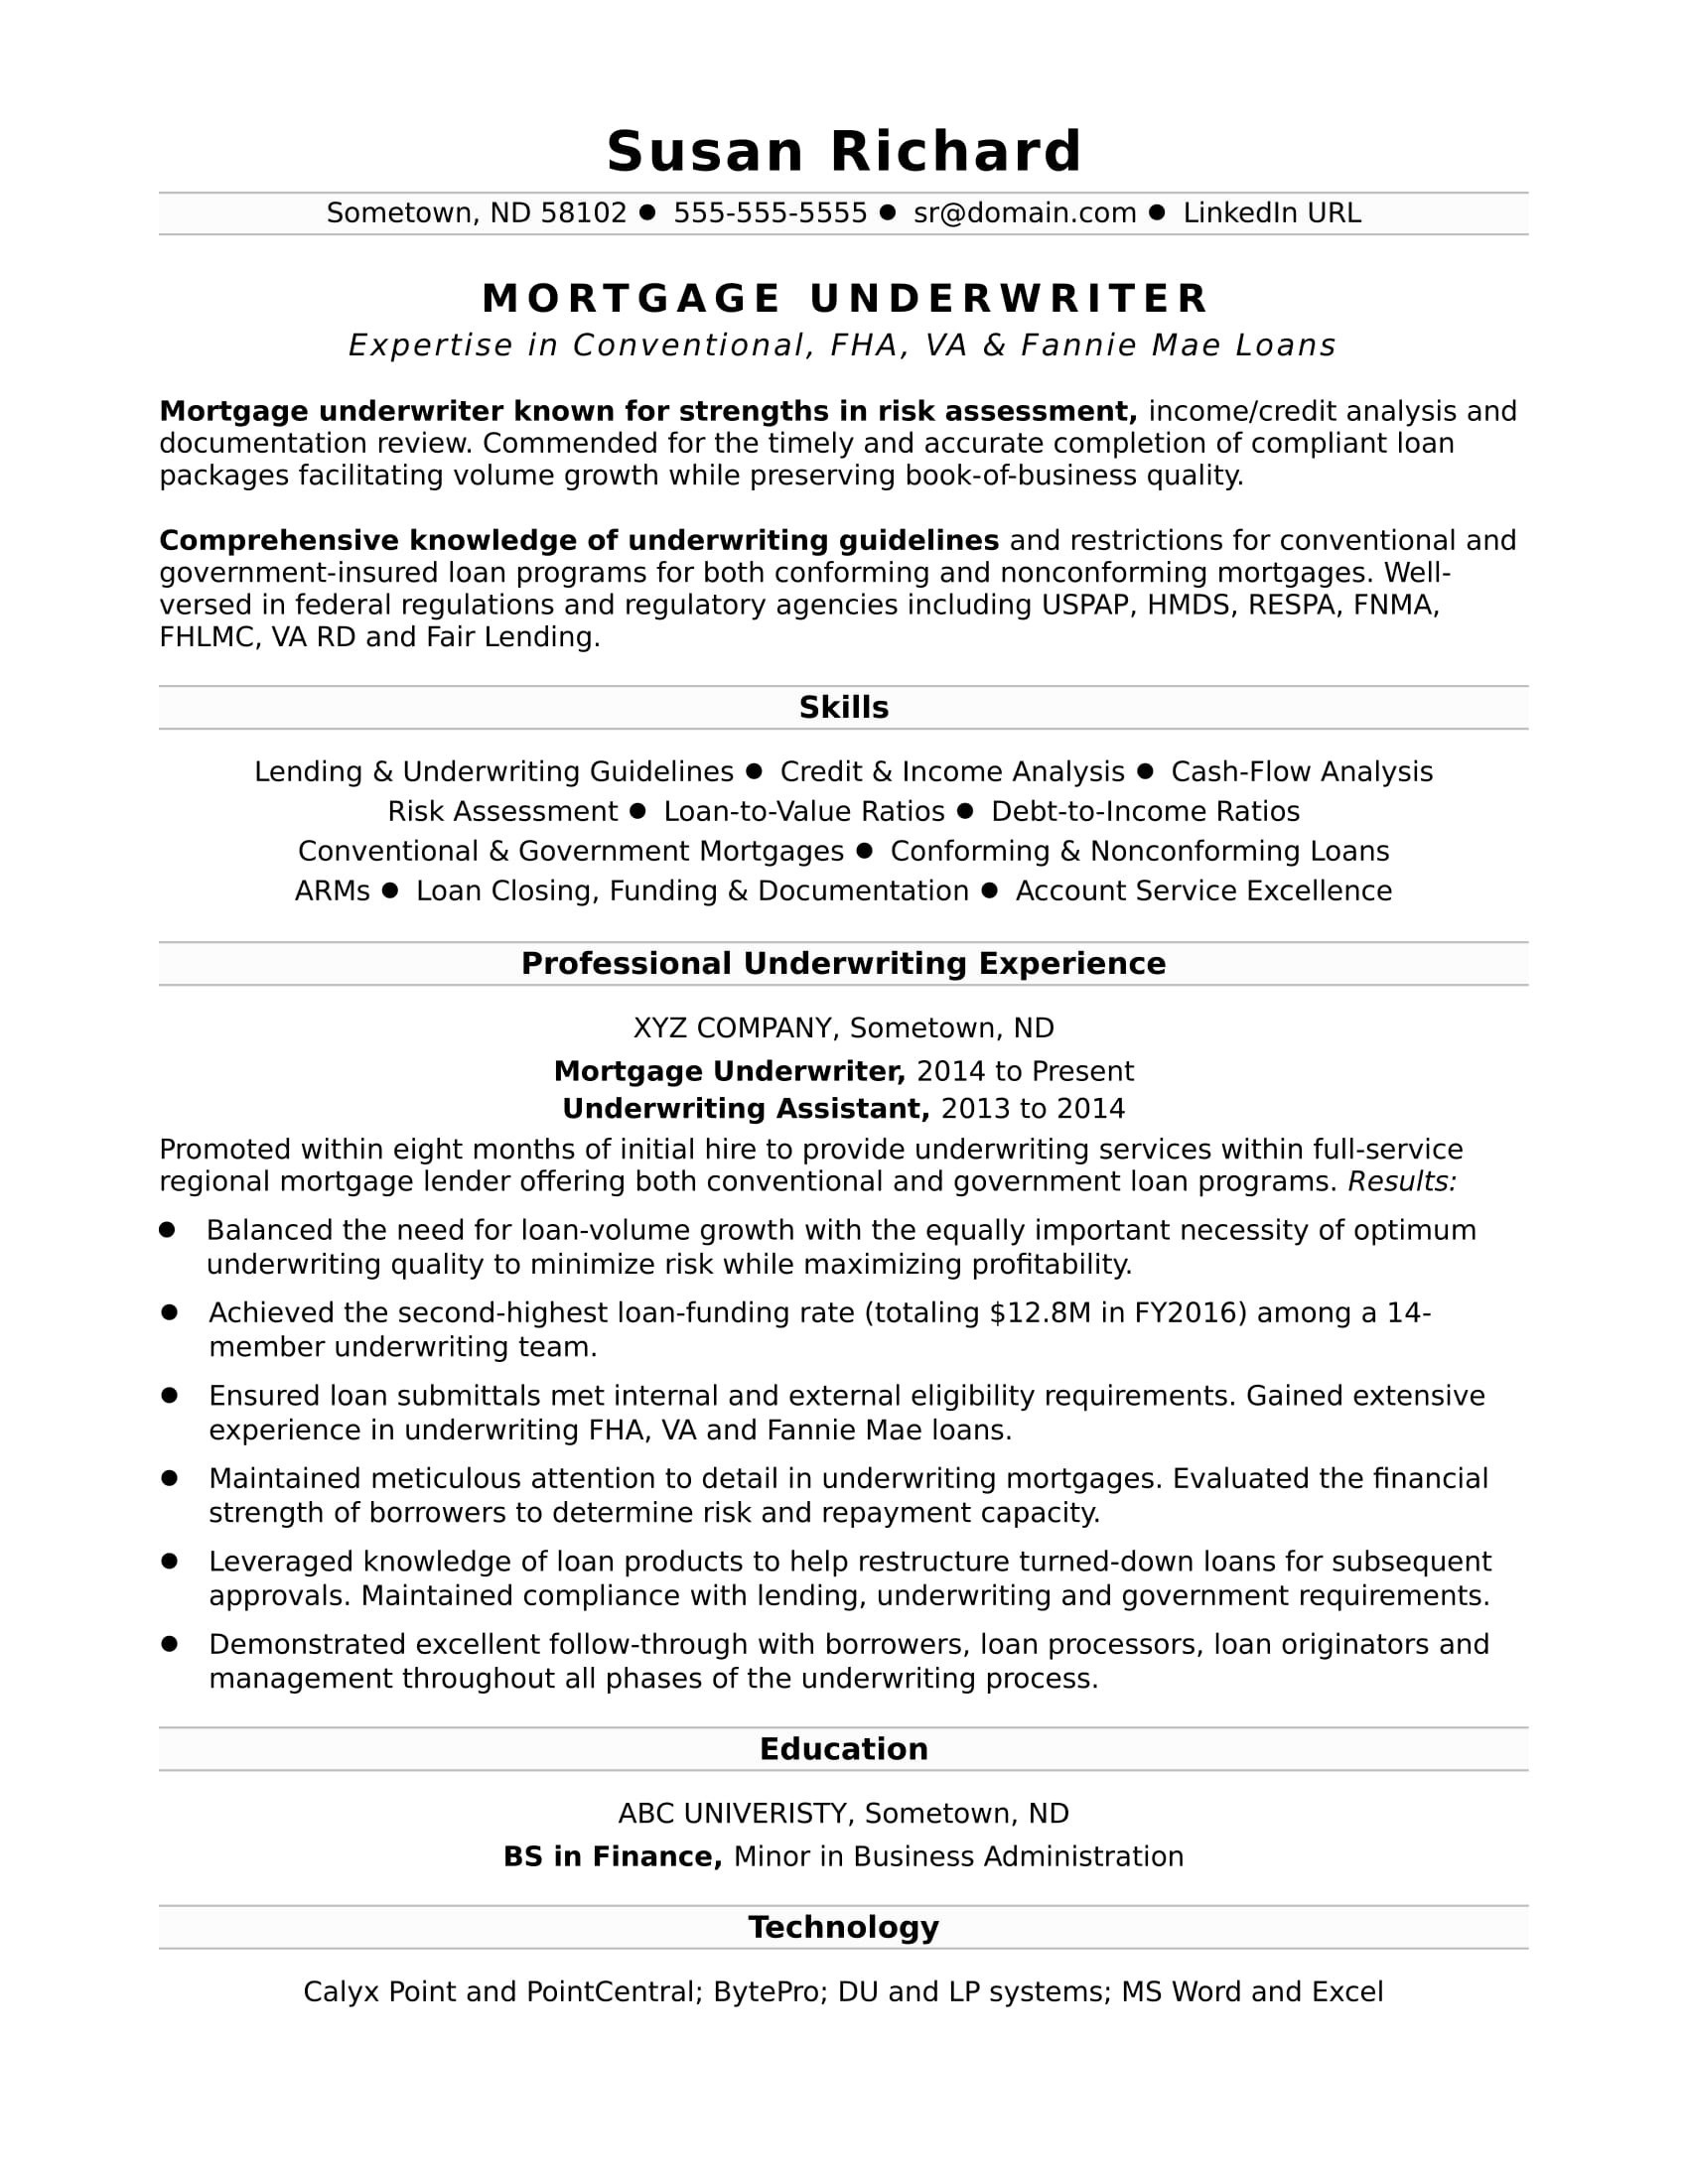 My Perfect Resume Review - My Perfect Resume Cancel Subscription Elegant Template for Resume